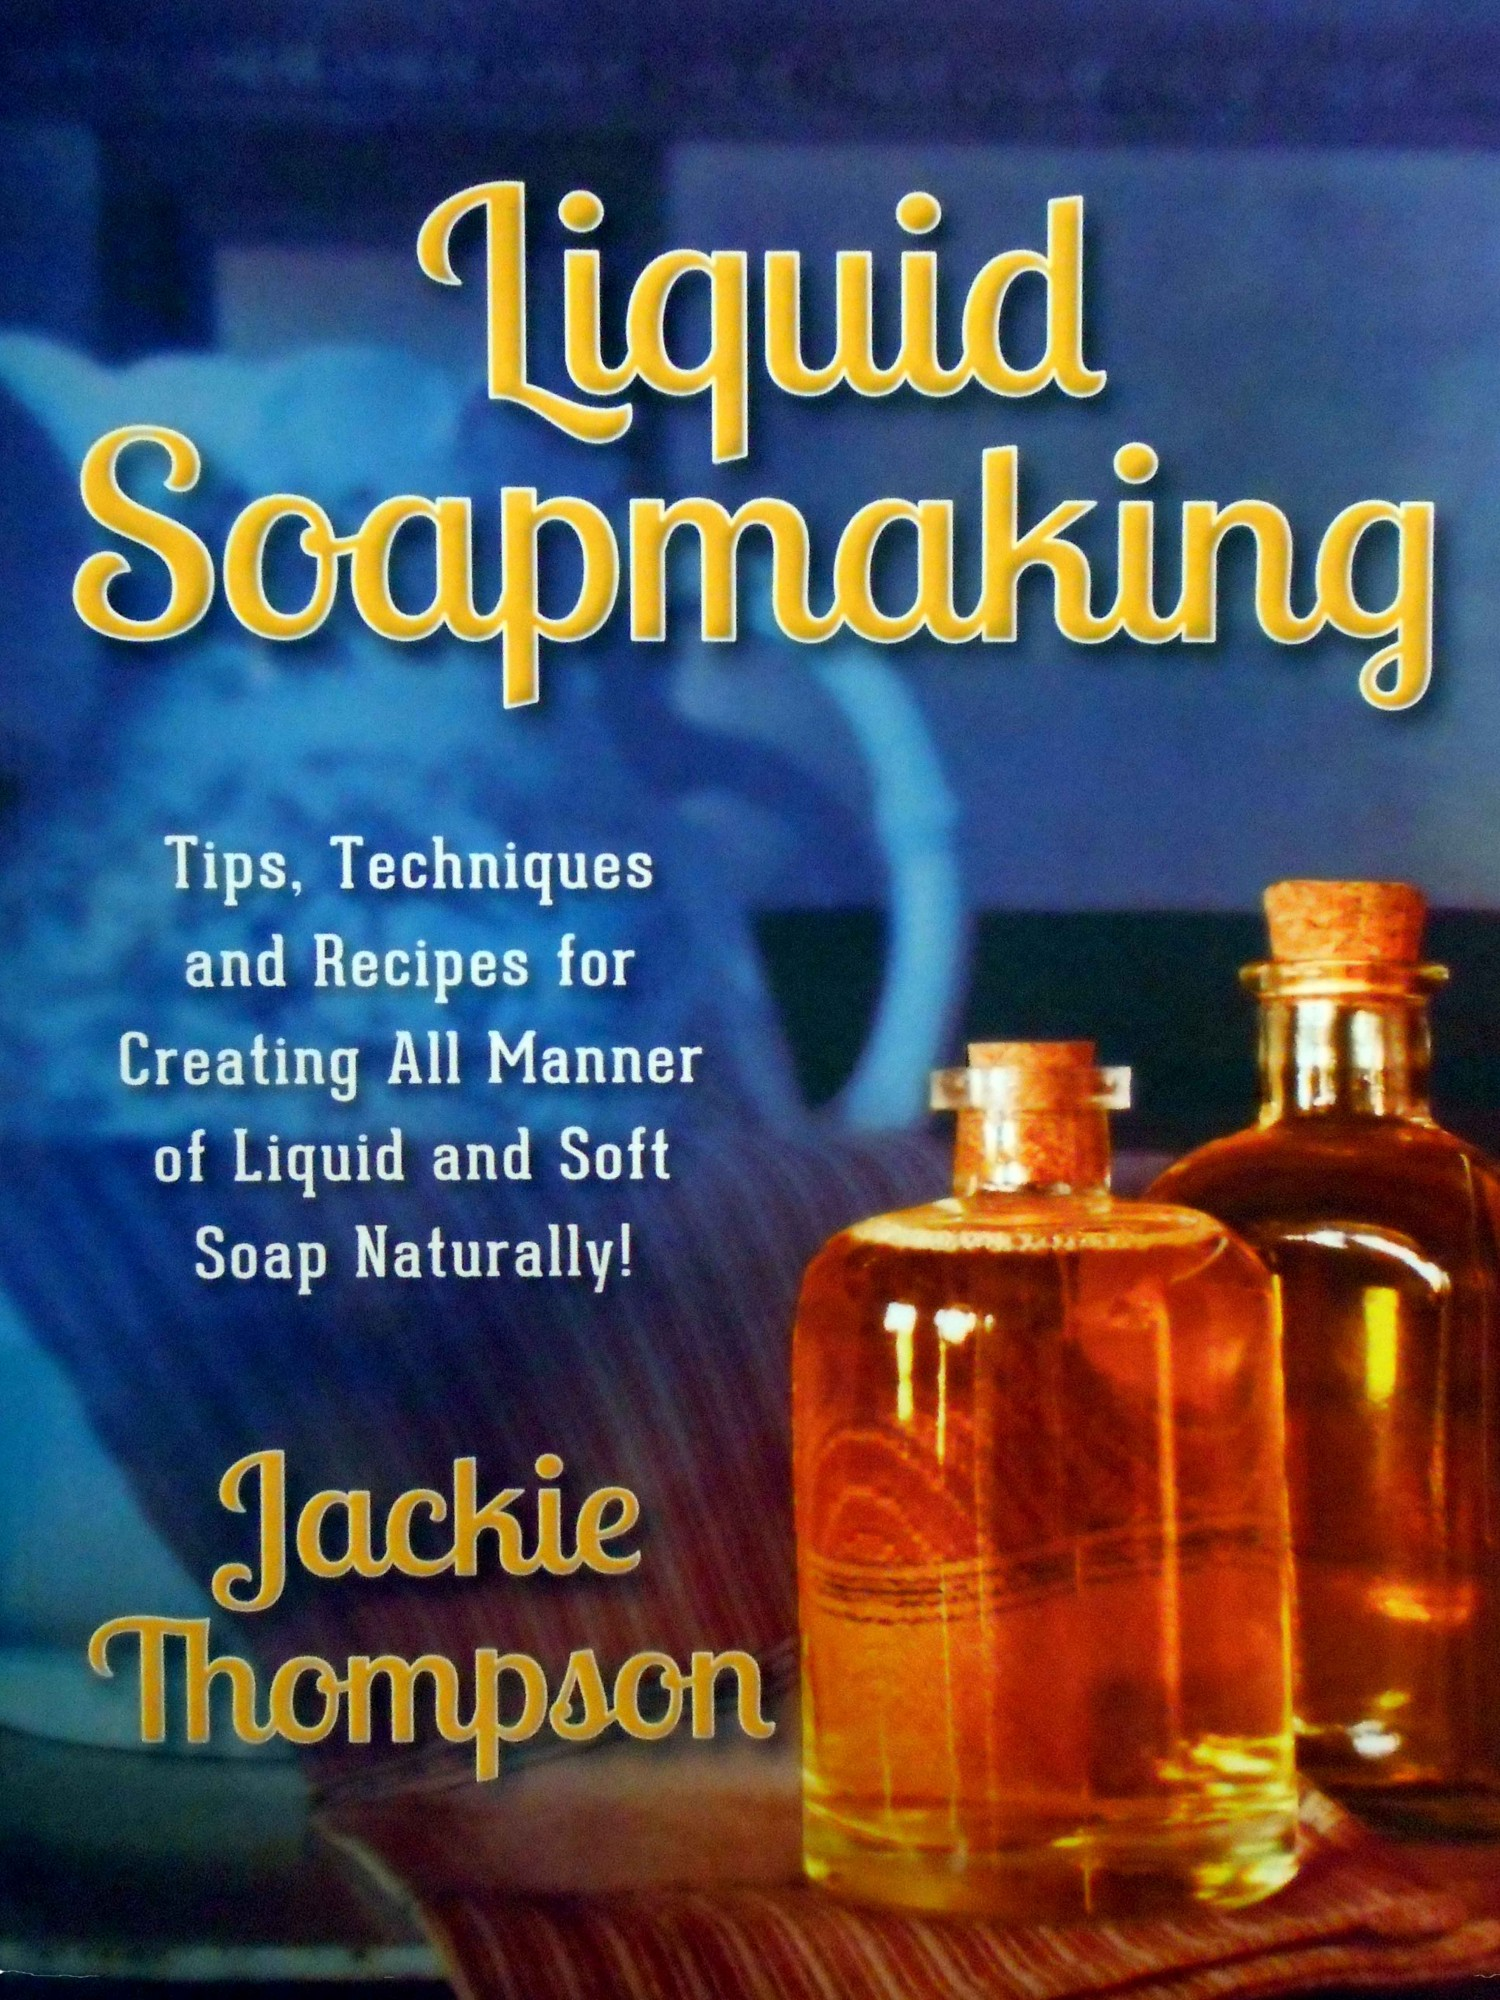 Liquid Soapmaking